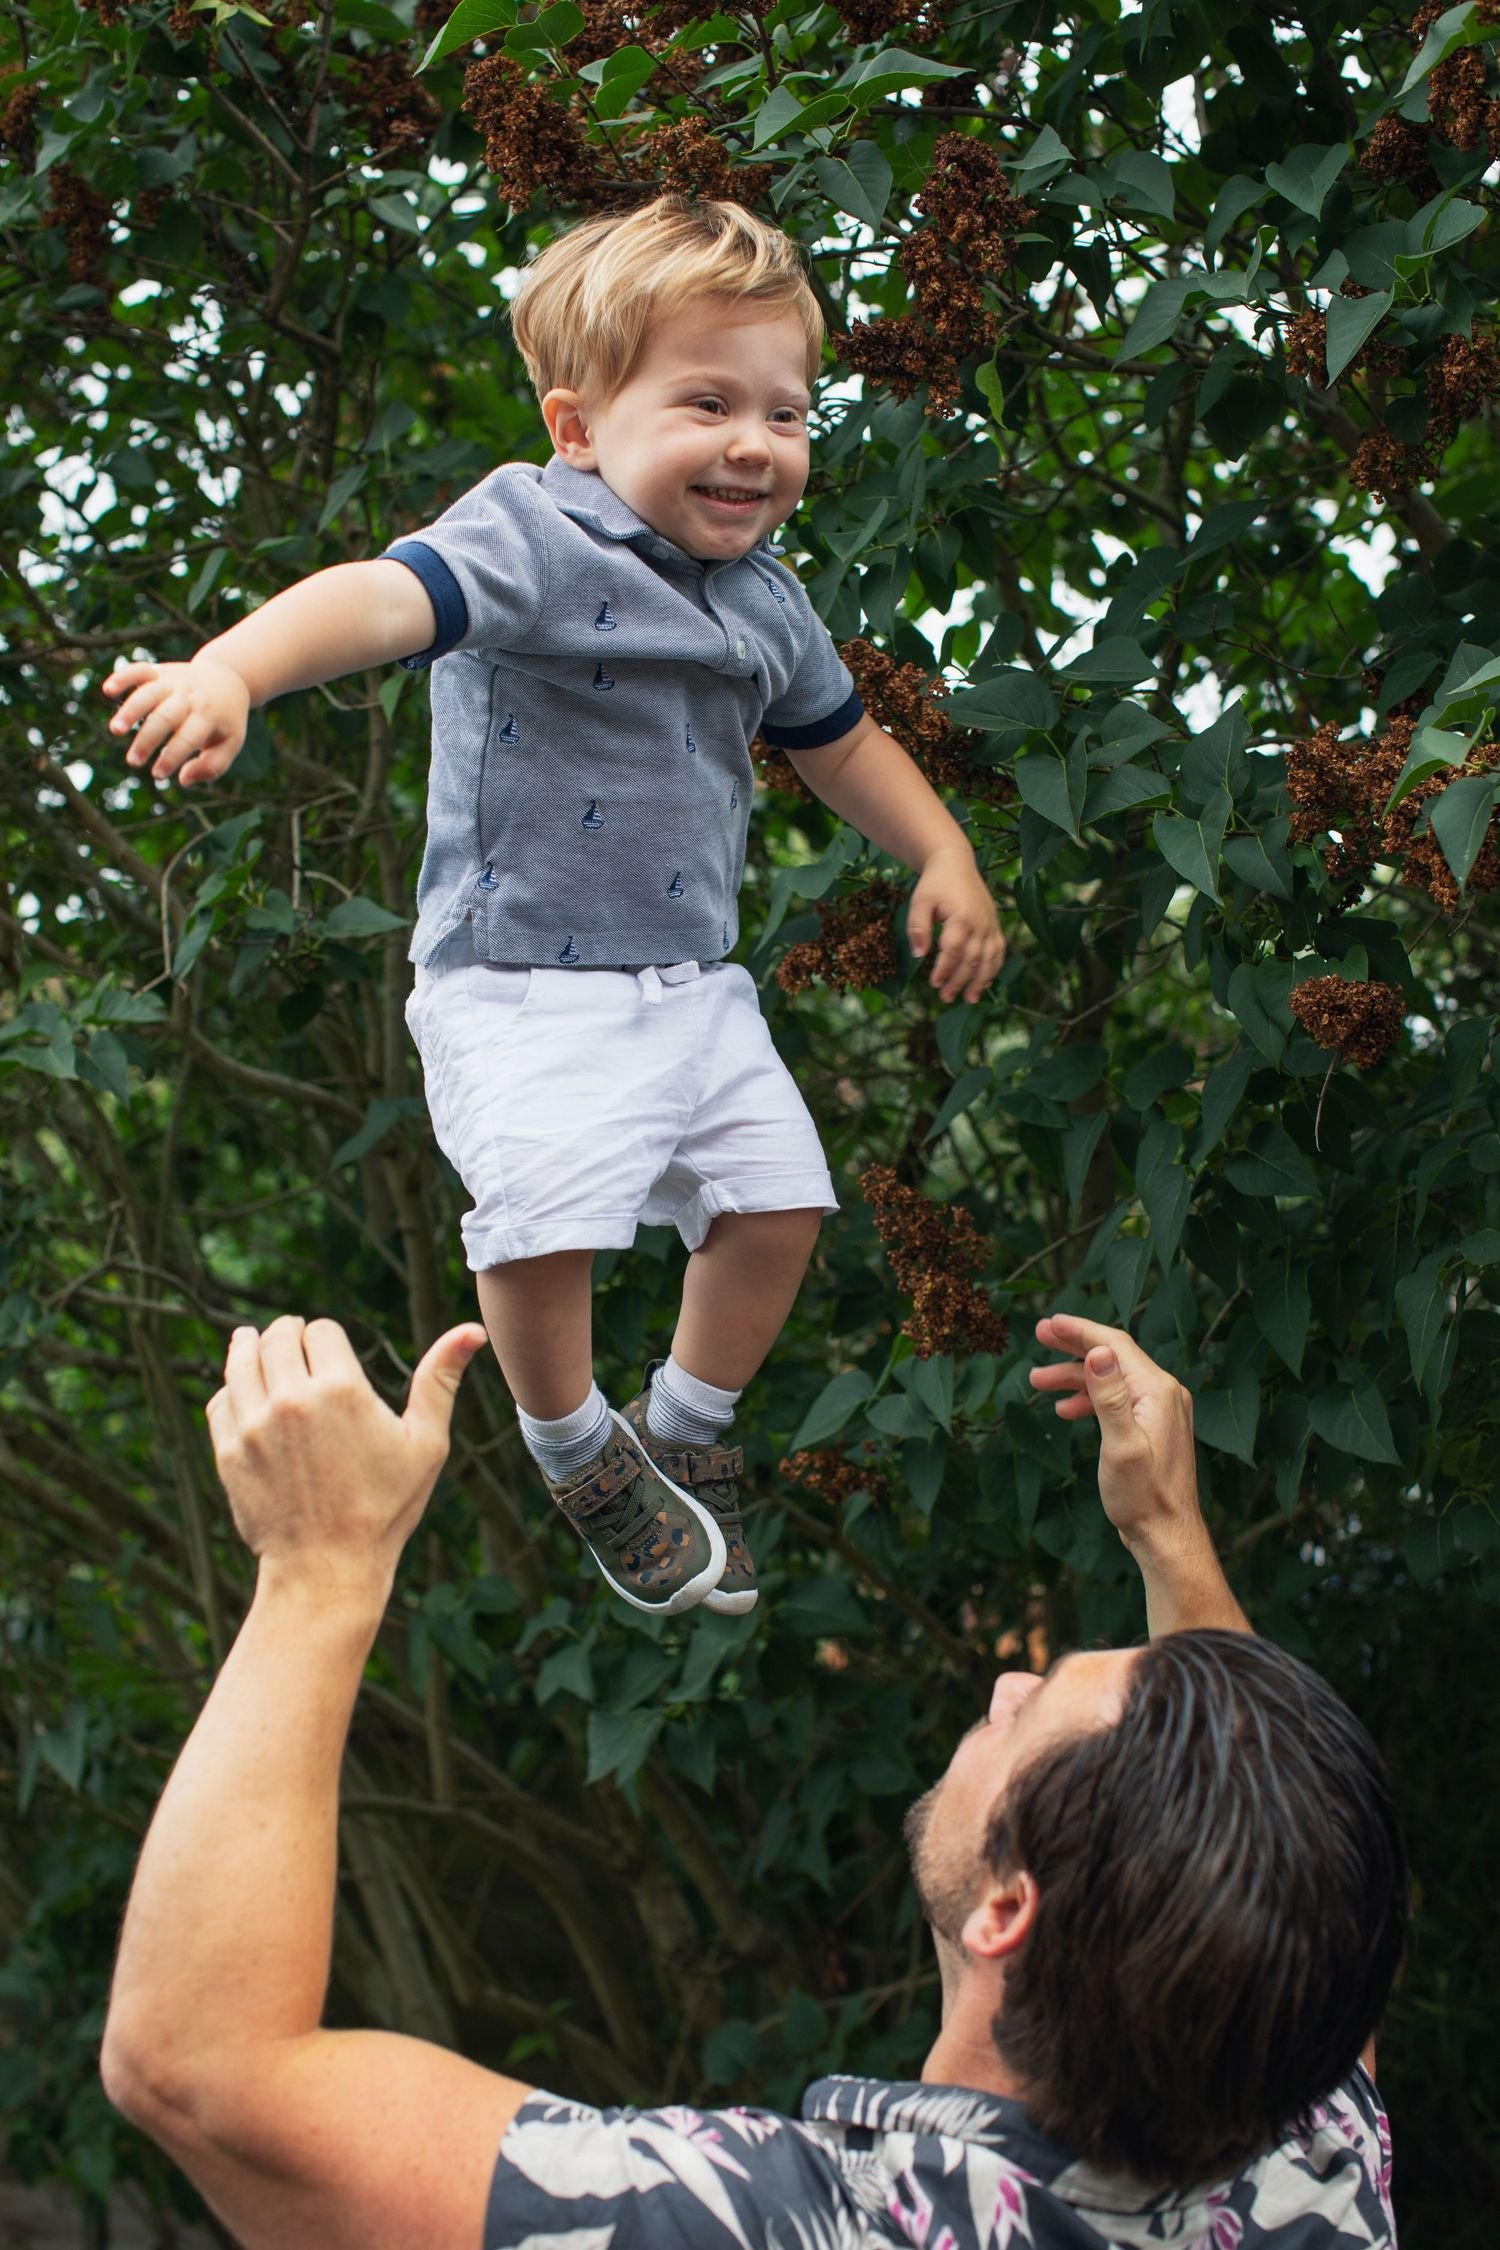 small boy being thrown up in the air by his father